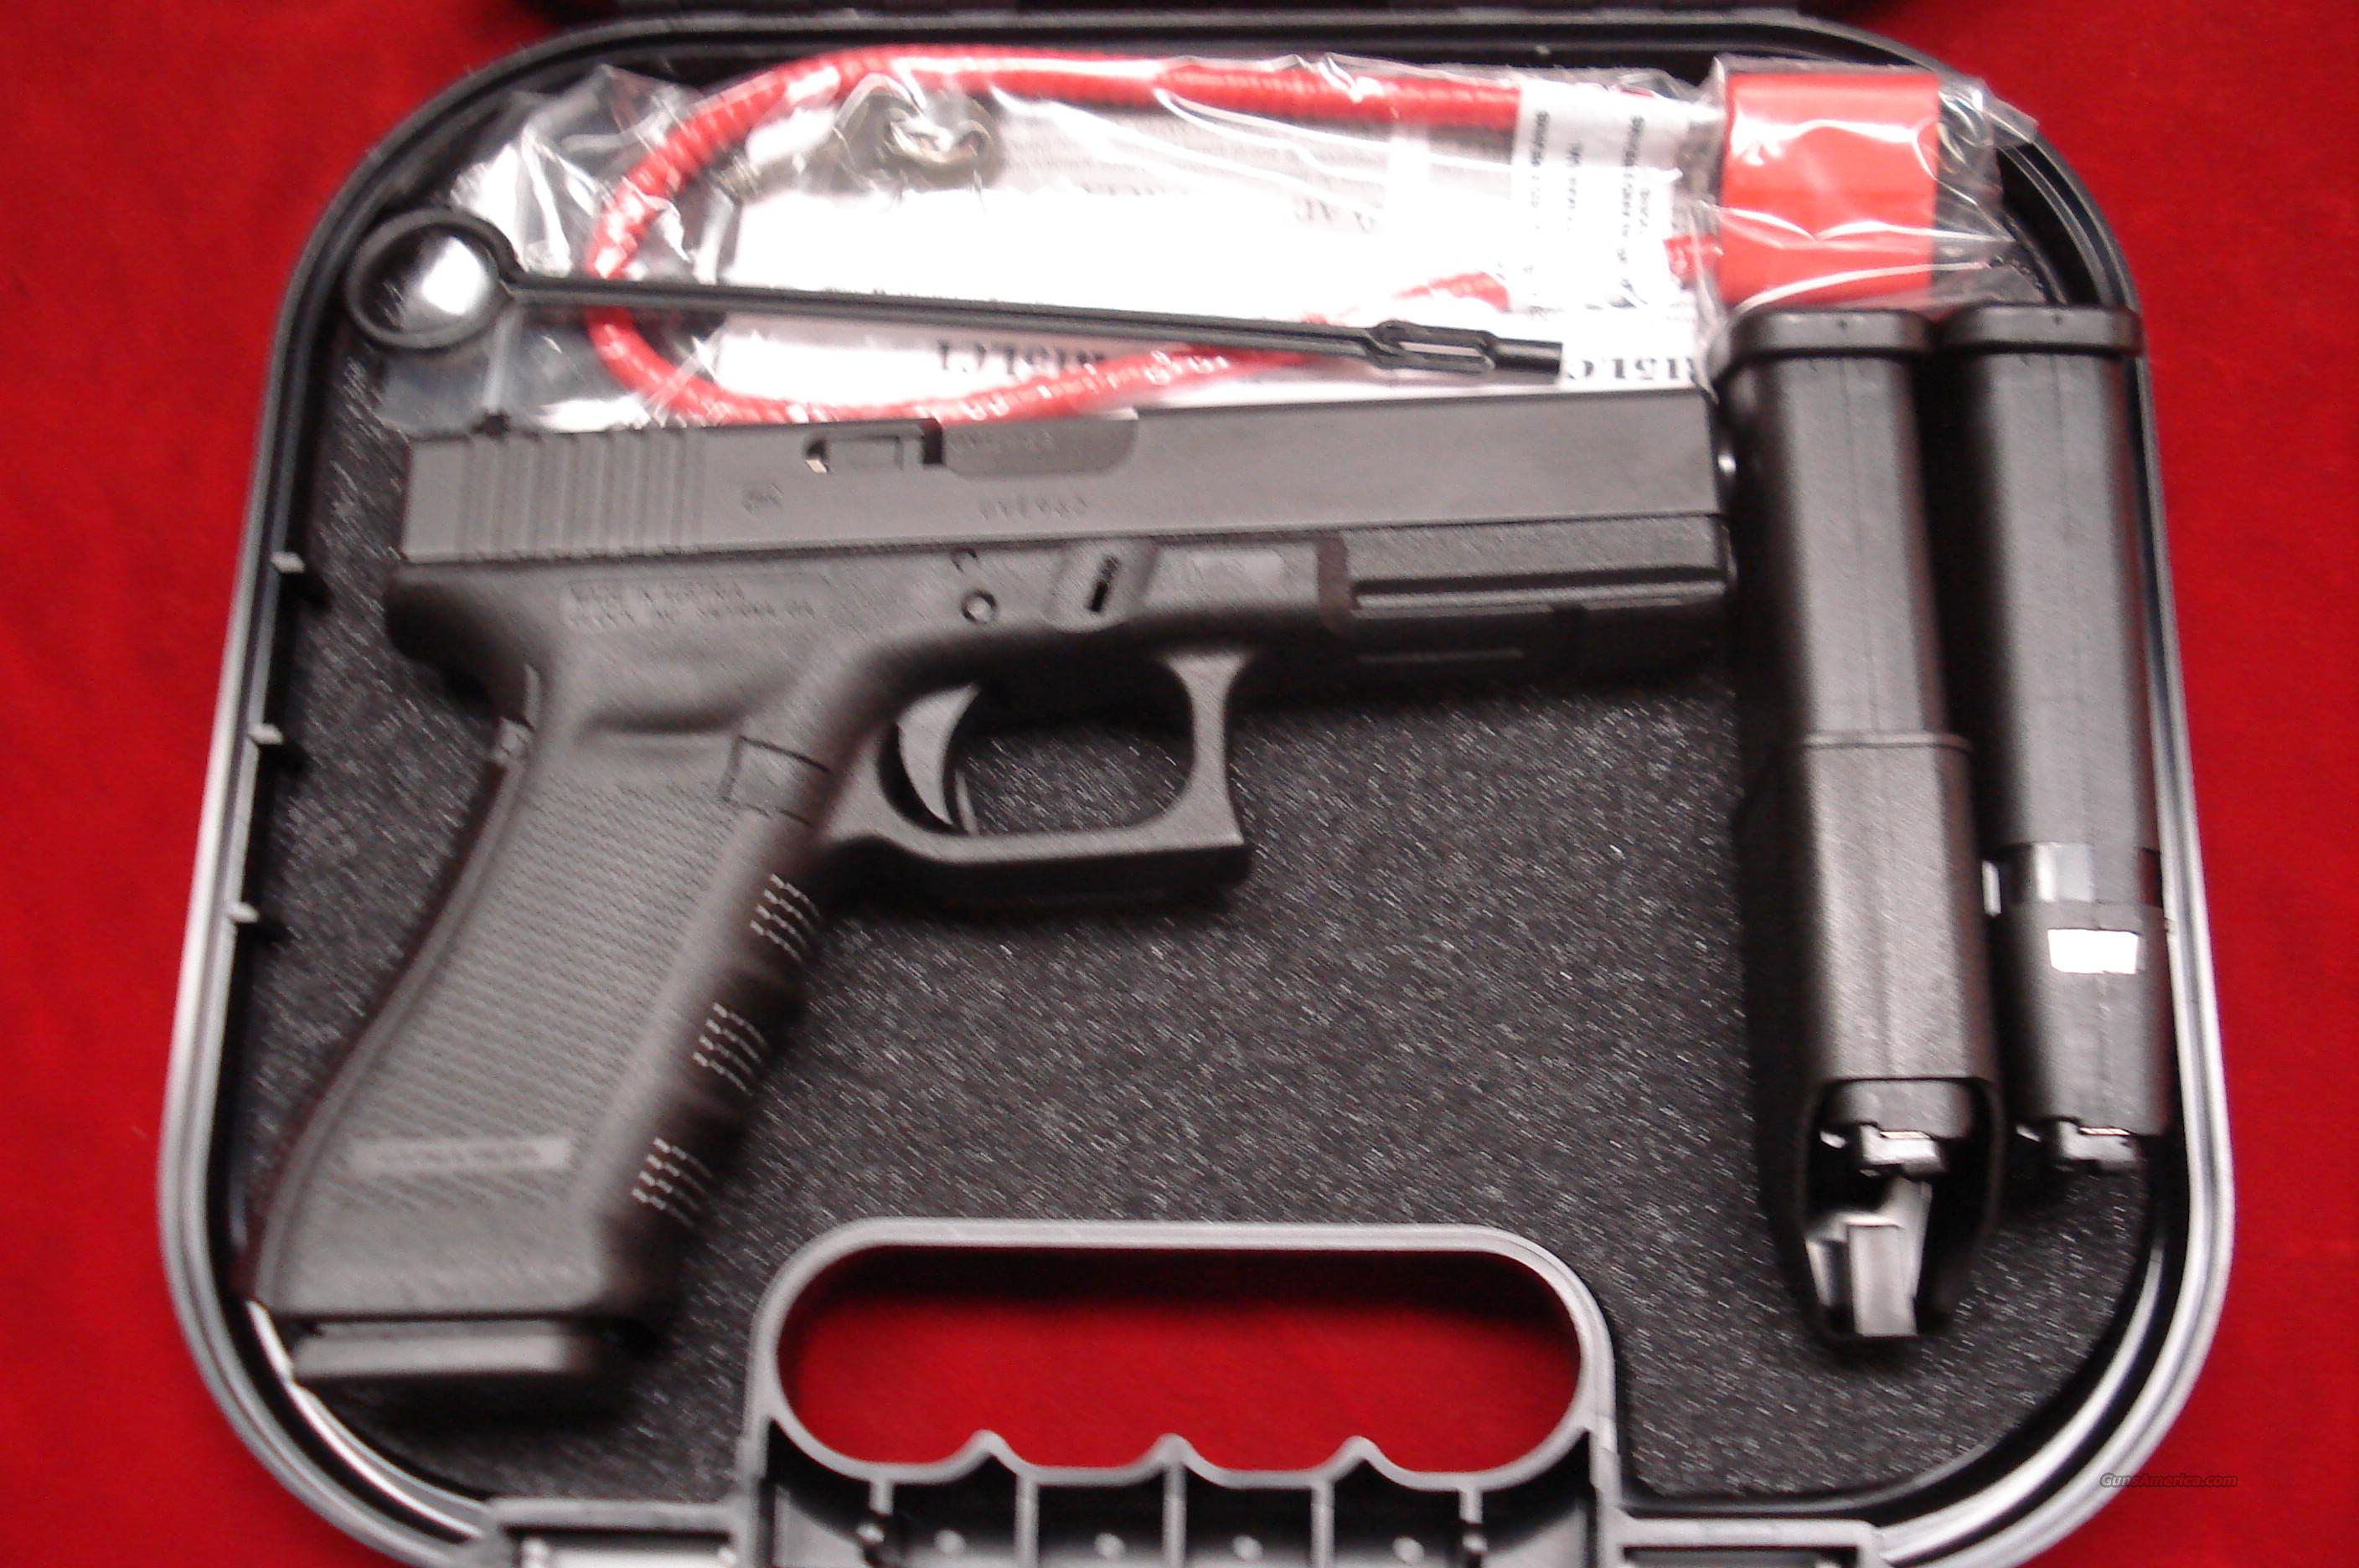 GLOCK NEW MODEL 17 GENERATION 4 9MM WITH THREE 10 ROUND MAGAZINES NEW   Guns > Pistols > Glock Pistols > 17